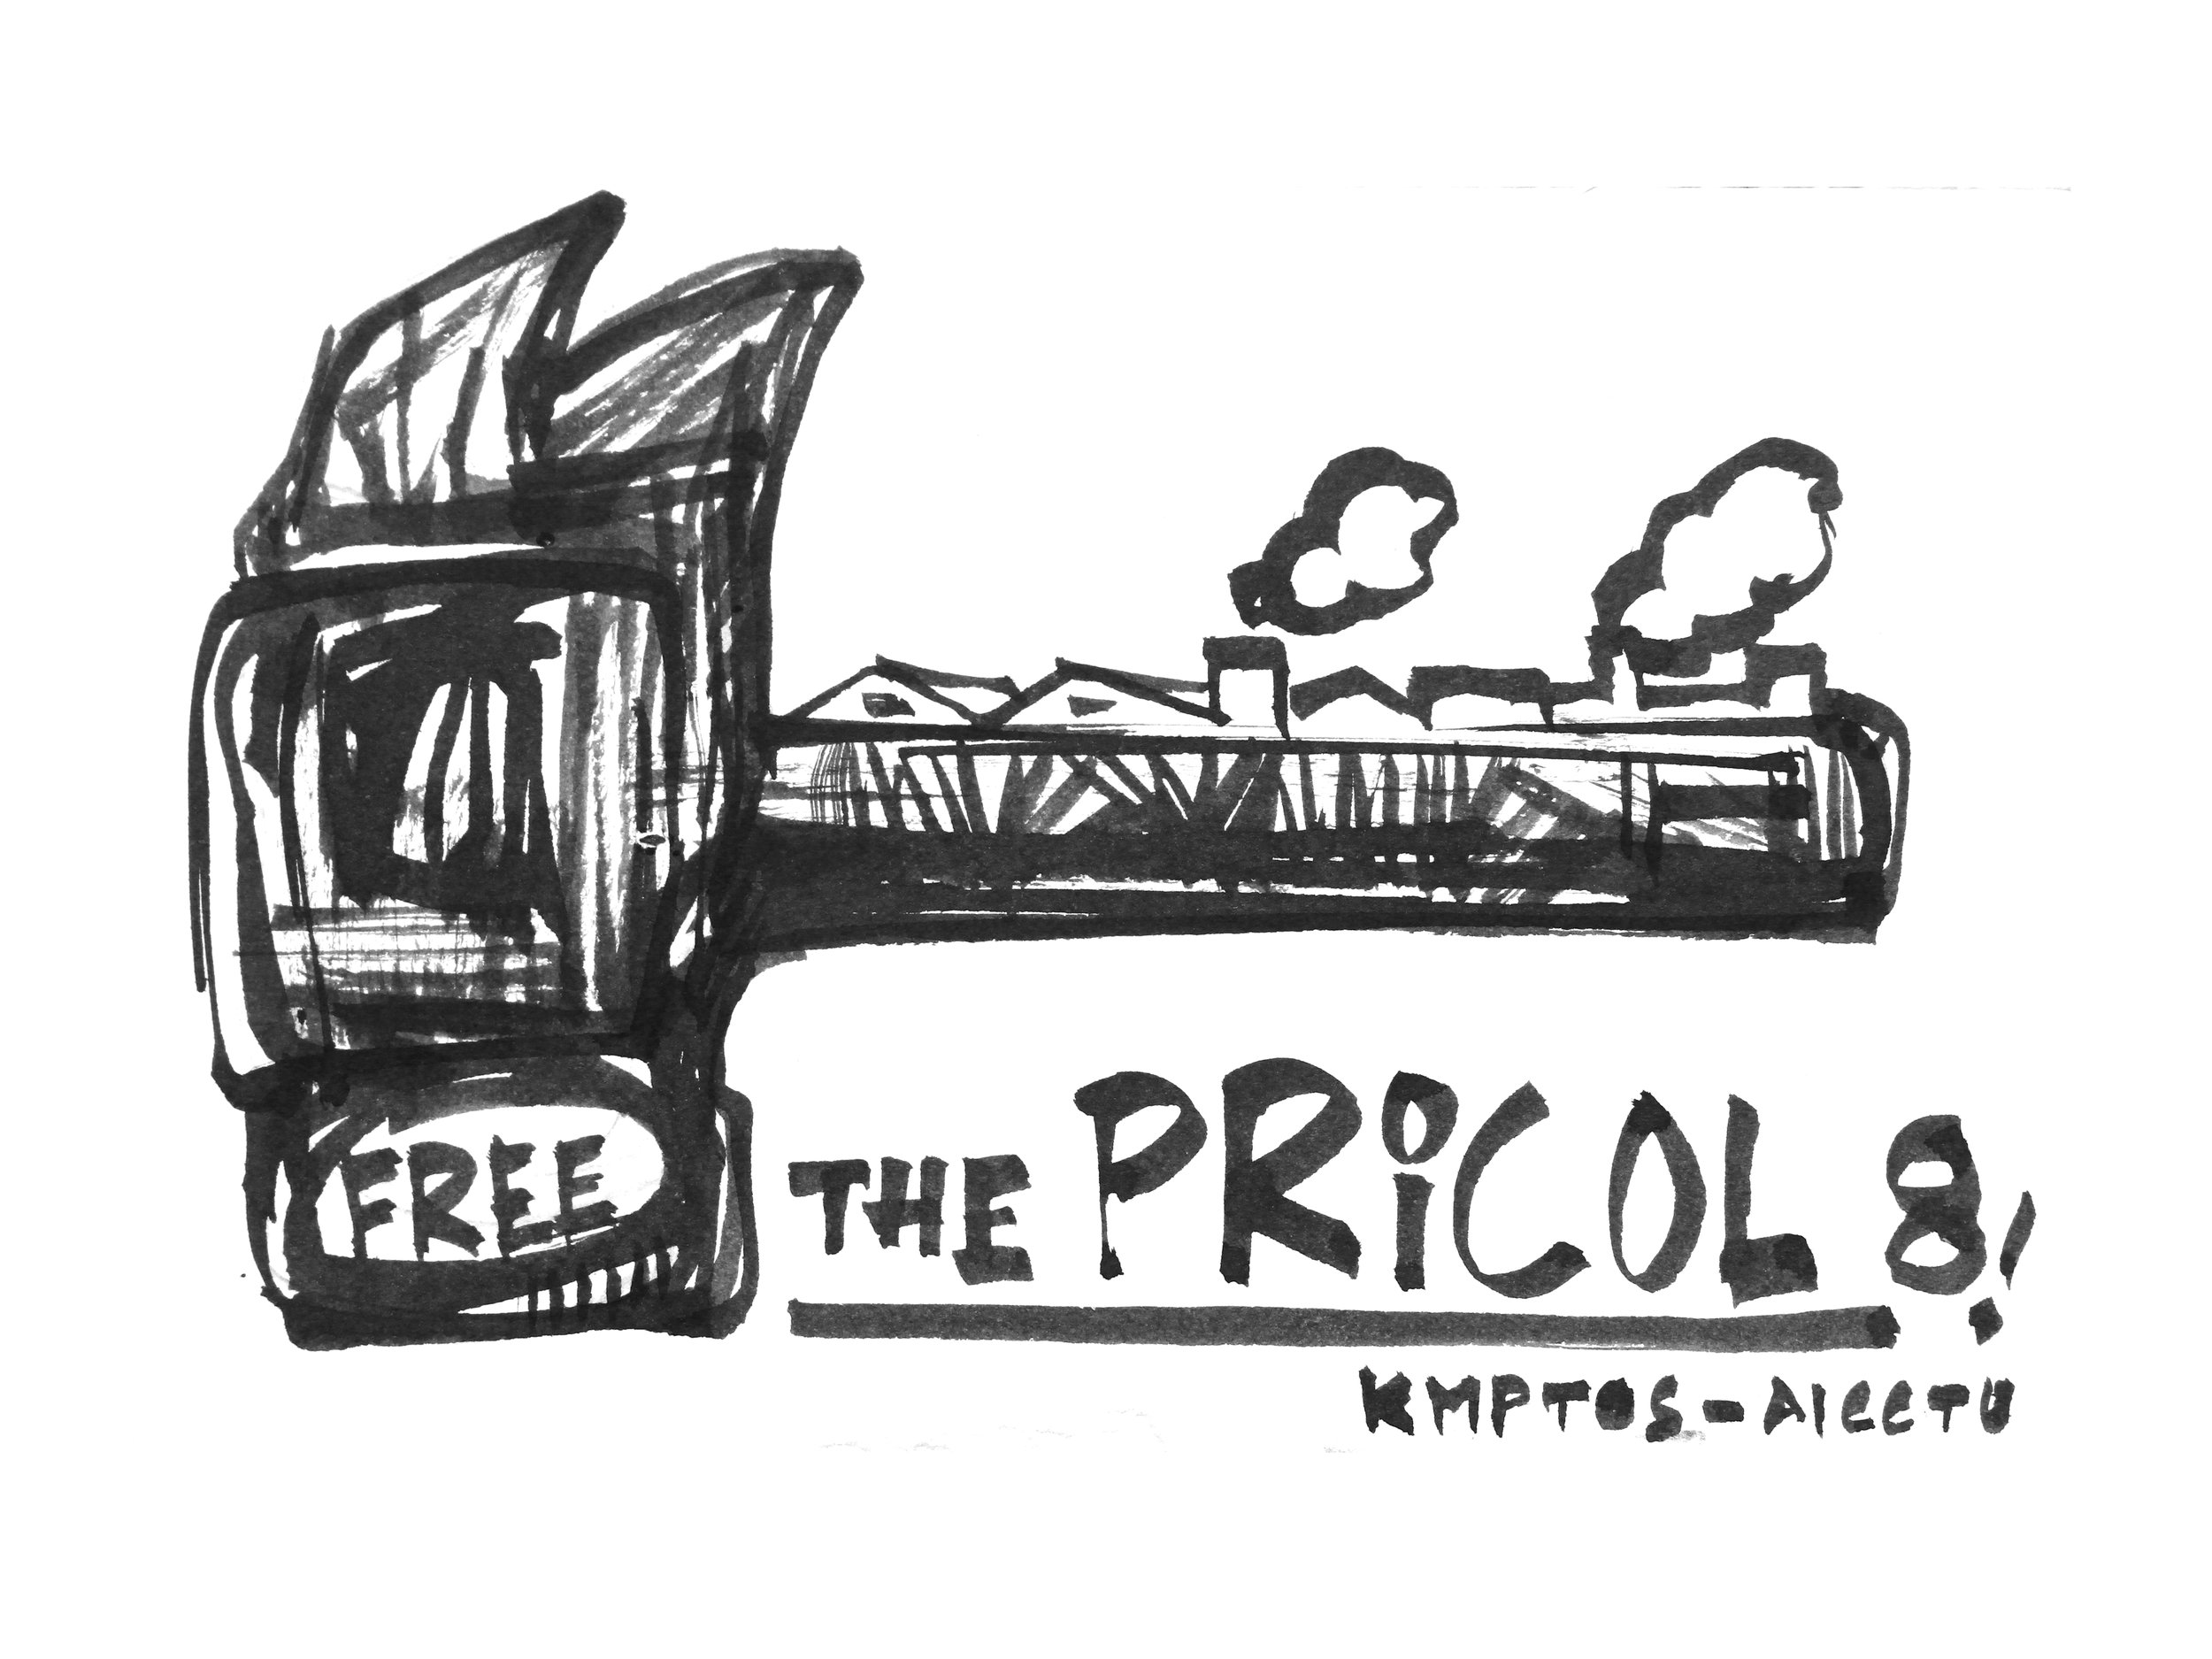 """Free the PRICOL 8,"" ink on post-cards."